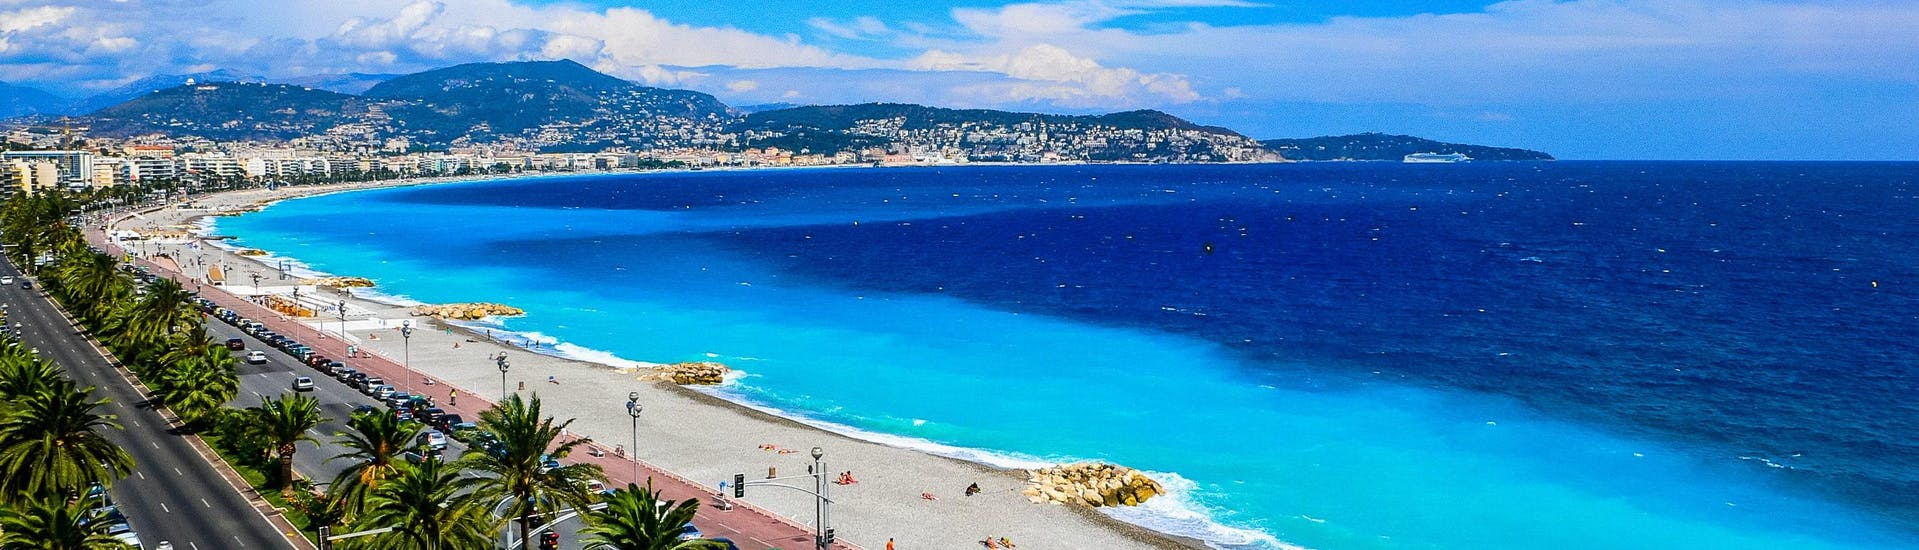 An image of the beautiful beach promenade and the deep blue waters of the Côte d'Azur you get to see when riding a jet ski or doing other water sports activities in Nice.